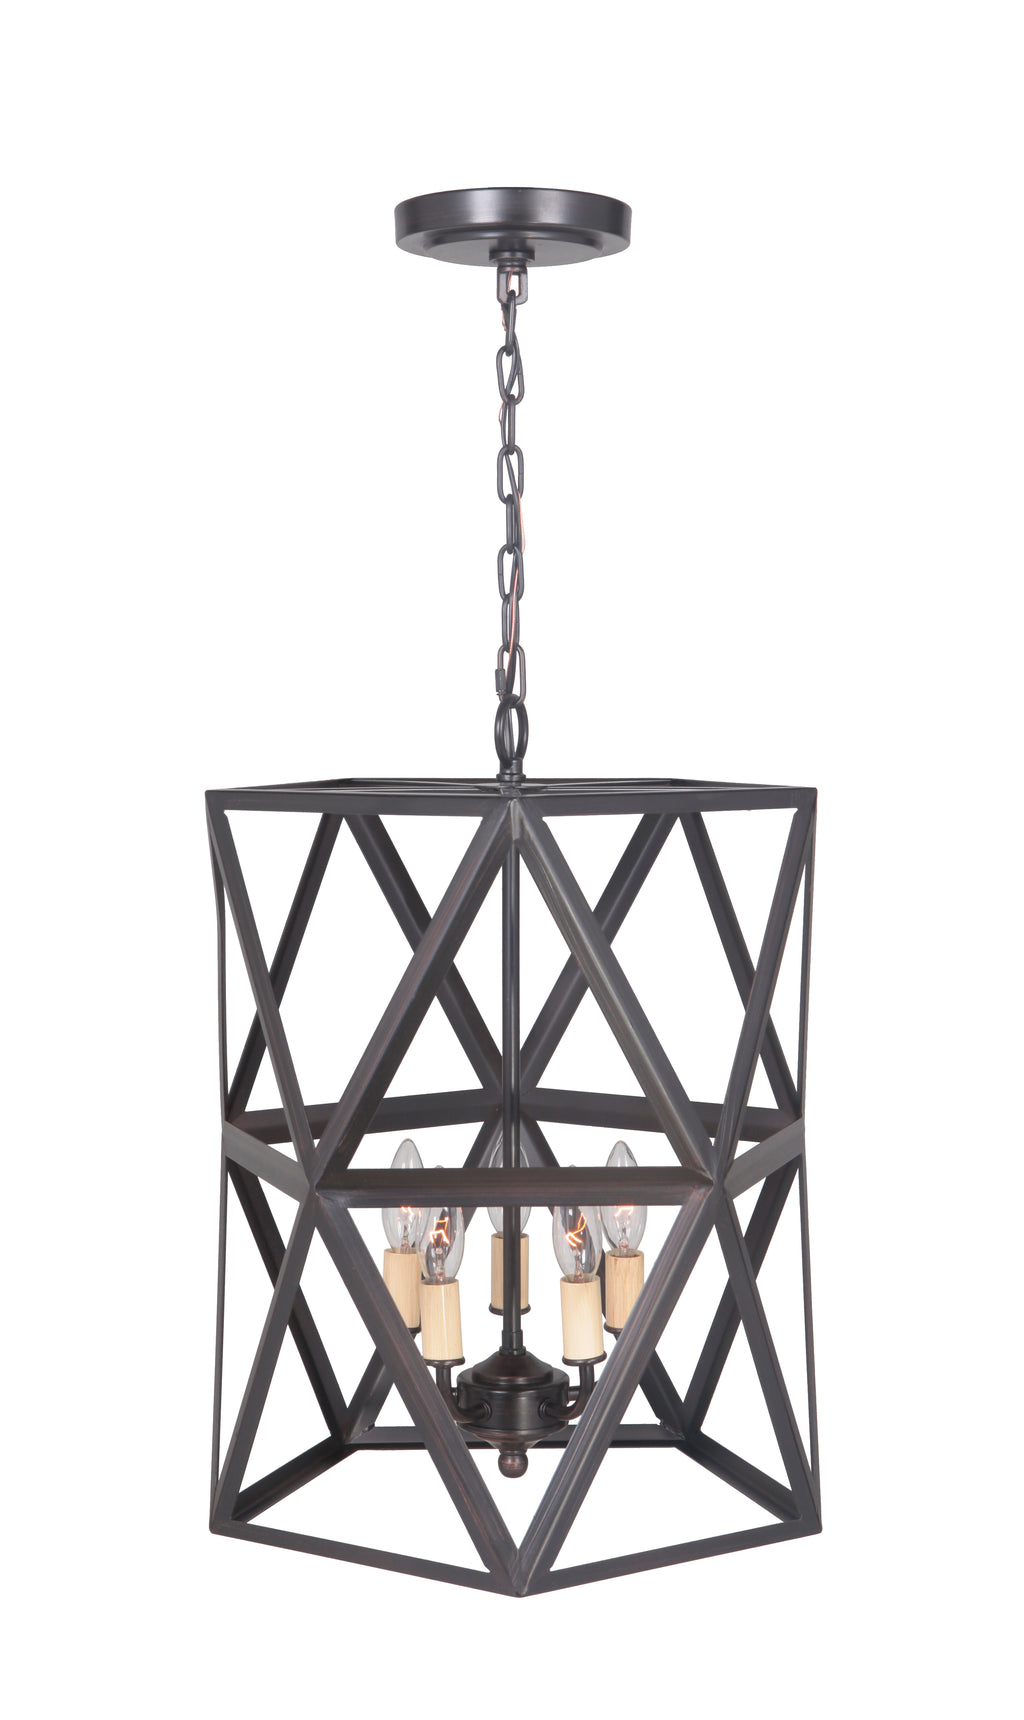 Hardwired Pendant Series 5-Lights Brushed Bronze Mini Chandelier with Cage shade PBCW-1011 - Worth Home Products